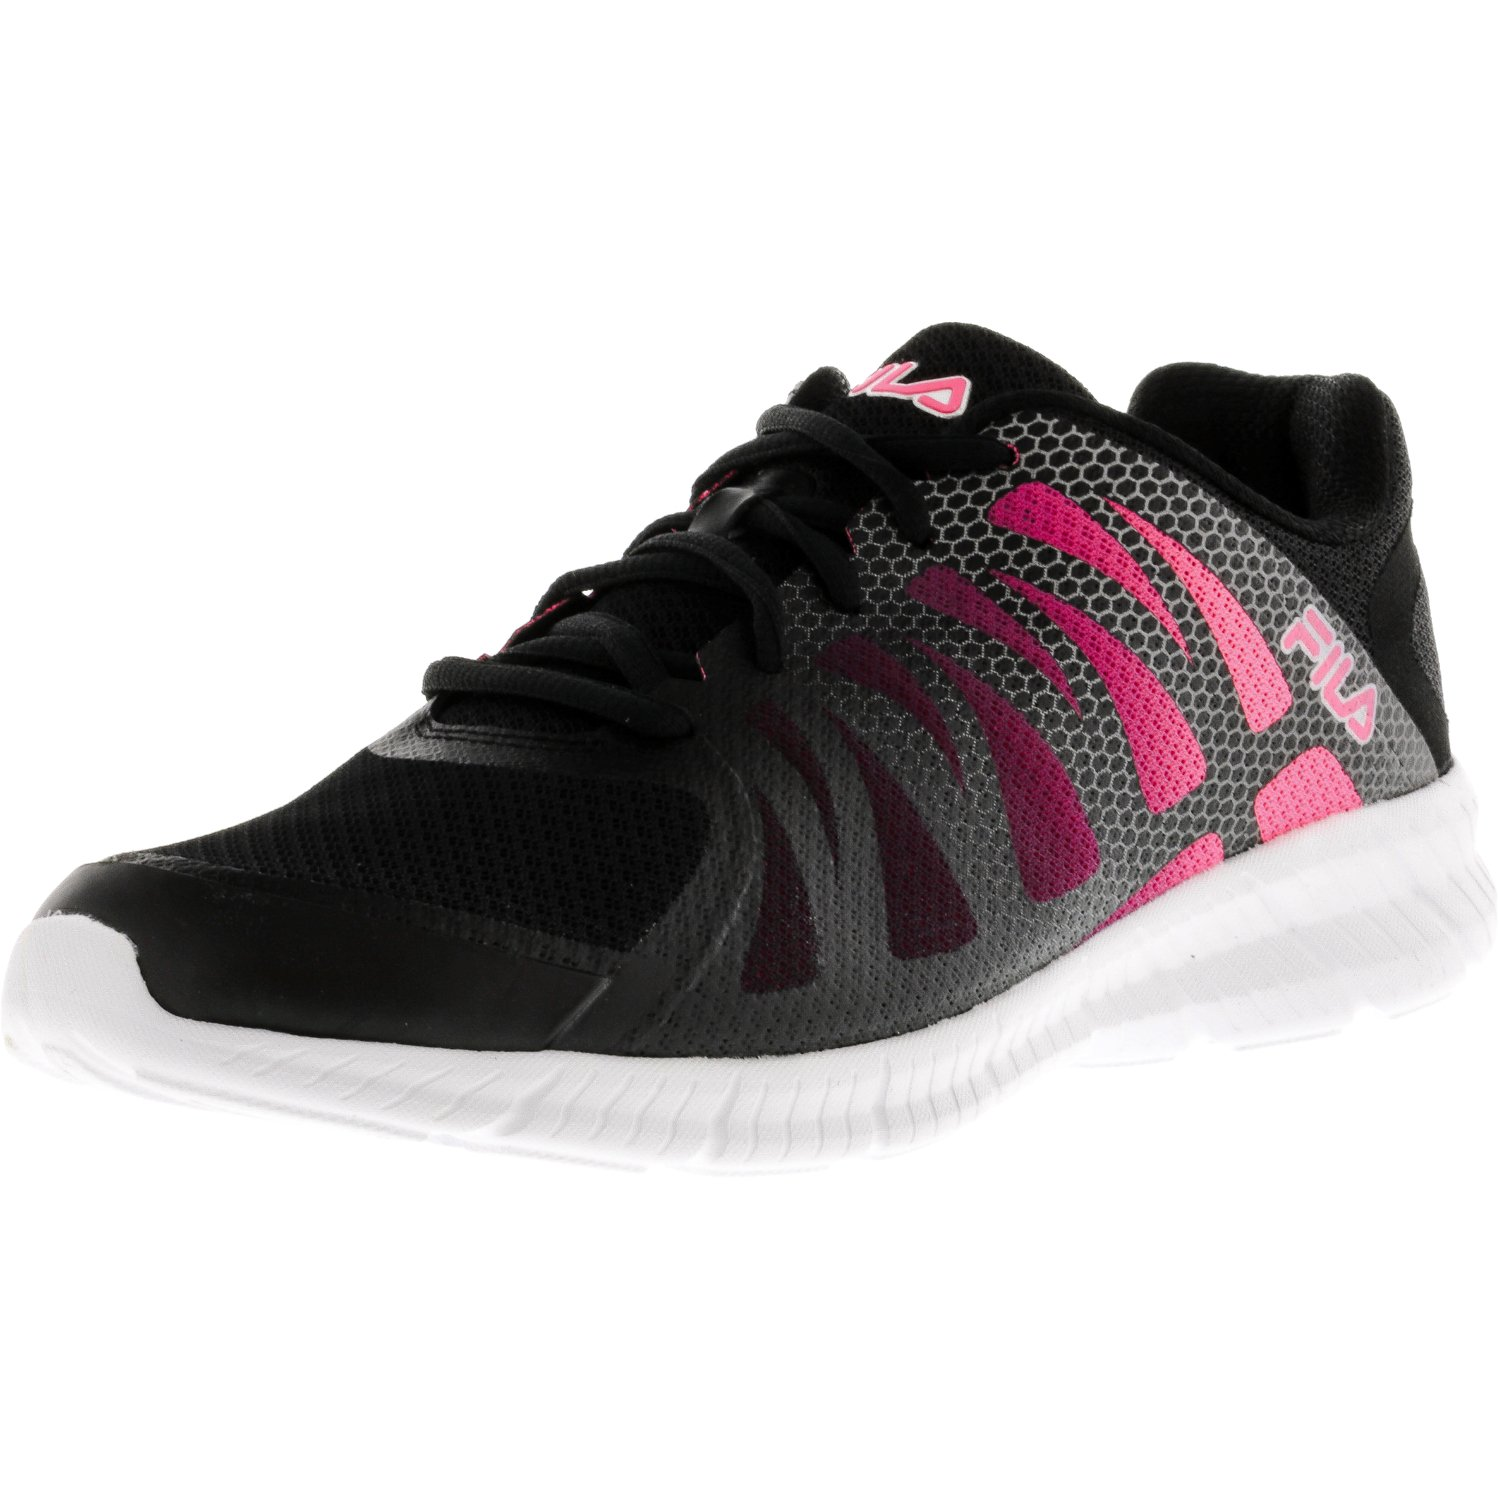 Knockout Pink Metallic Silver Ankle